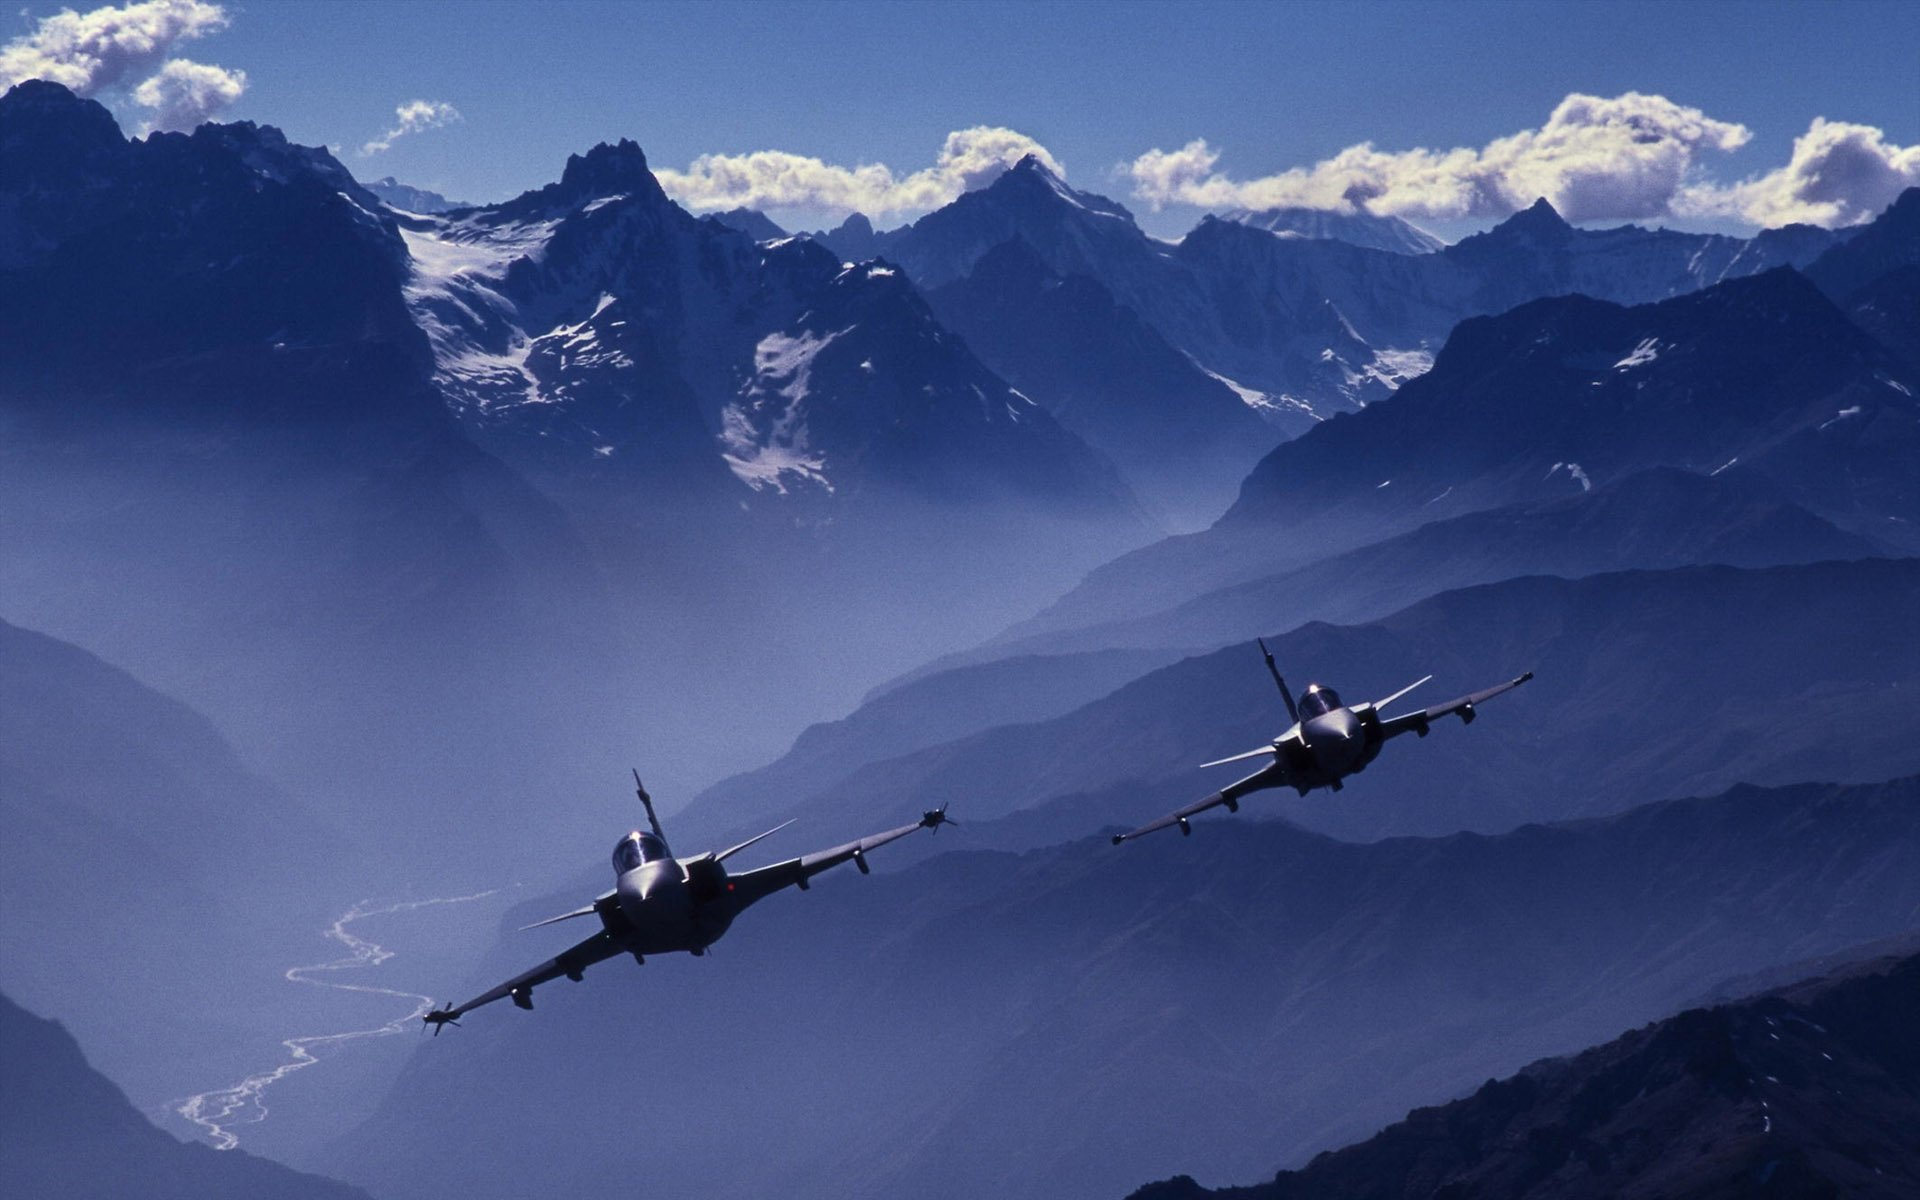 military aviation aircraft amazing wallpaper for desktop backgrounds 1920x1200